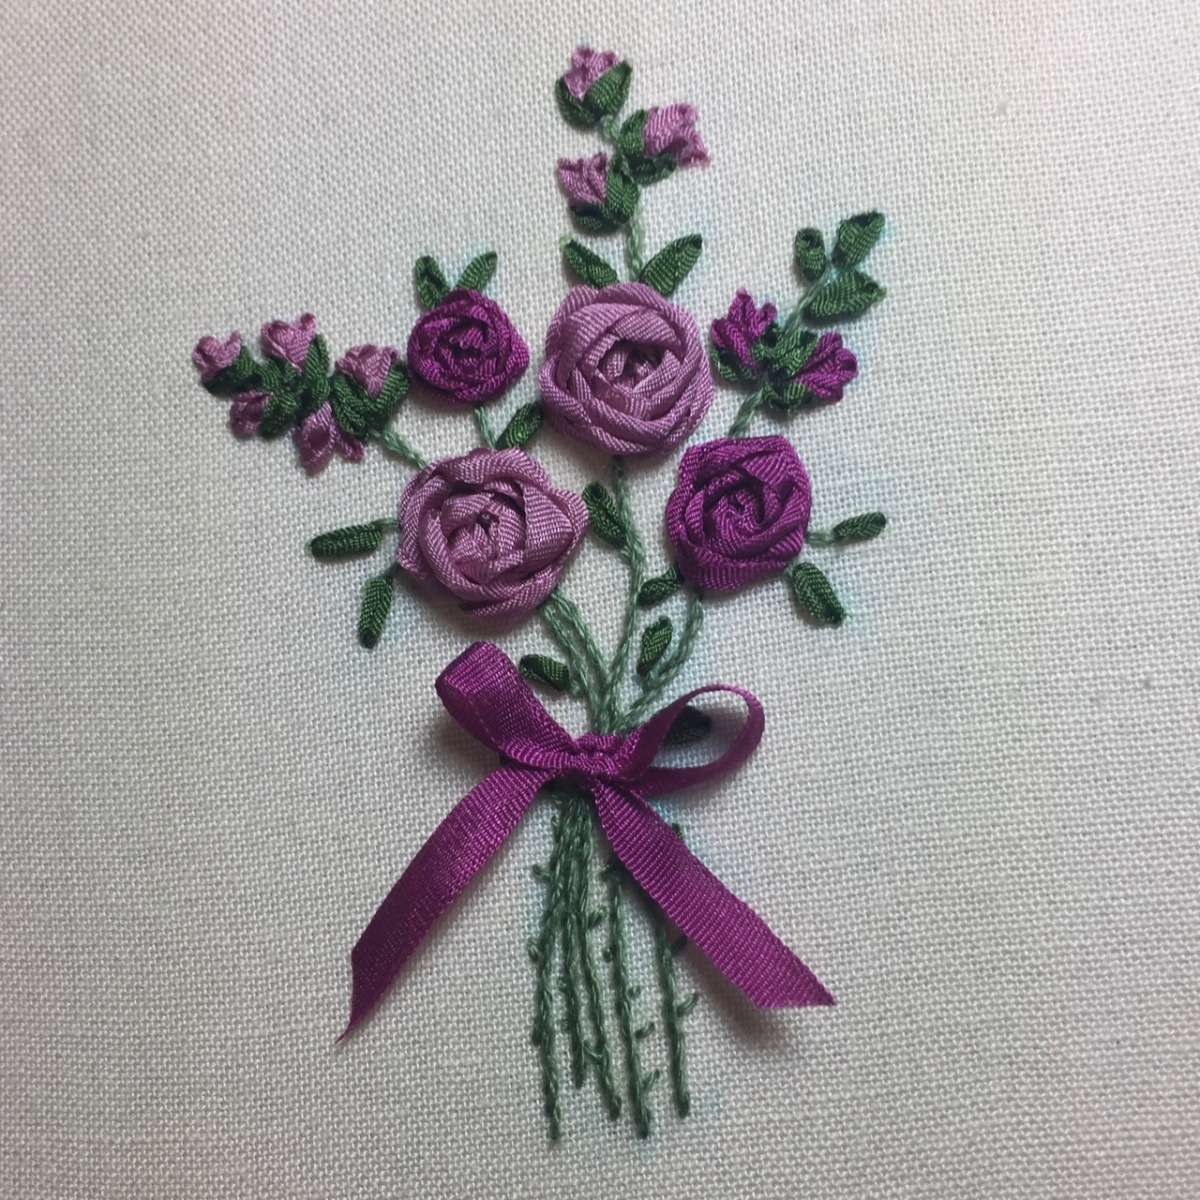 Silk Ribbon Embroidery - a first attempt